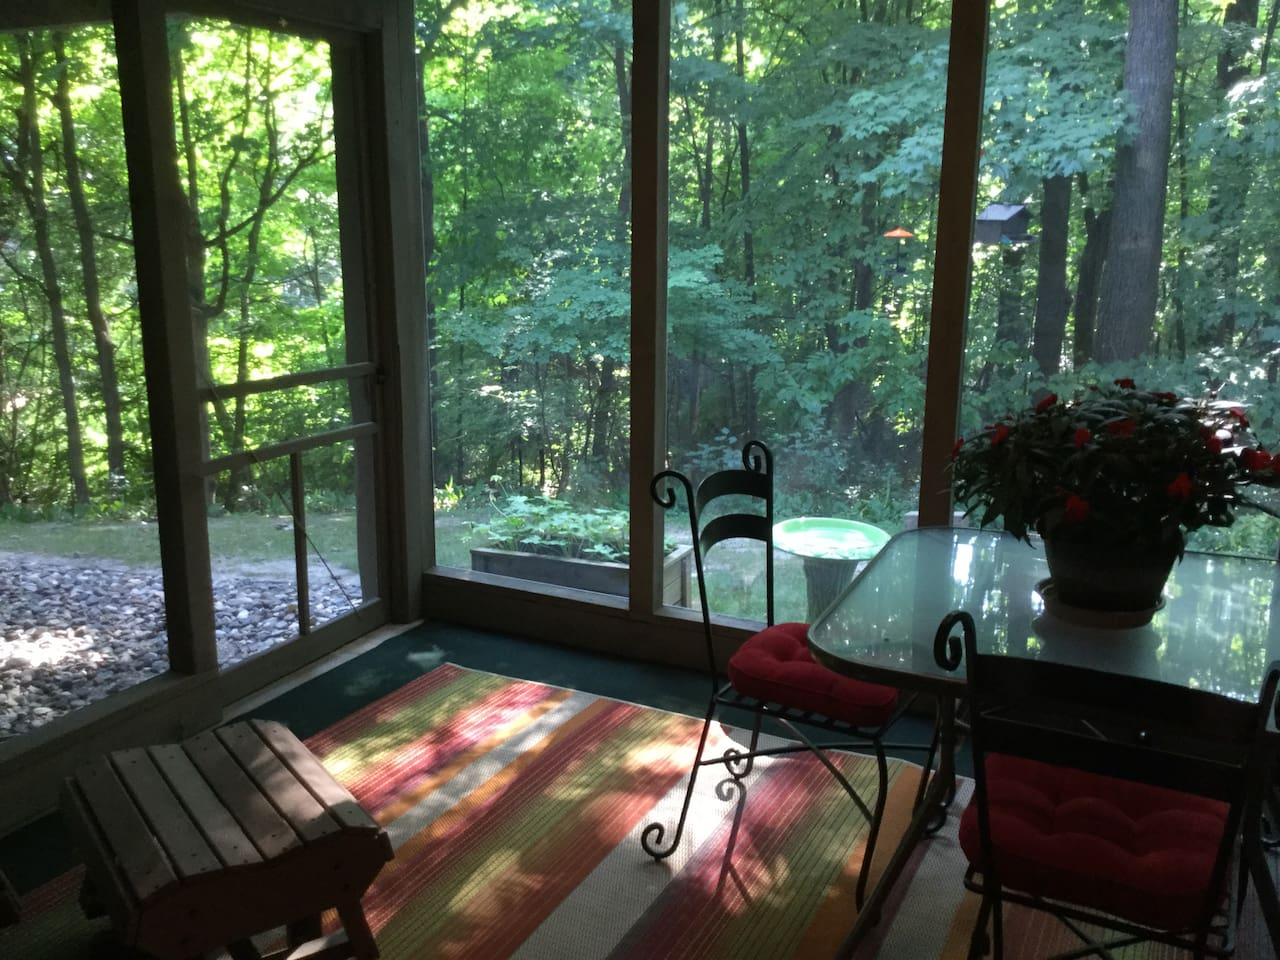 Screened porch, peaceful and relaxing setting.